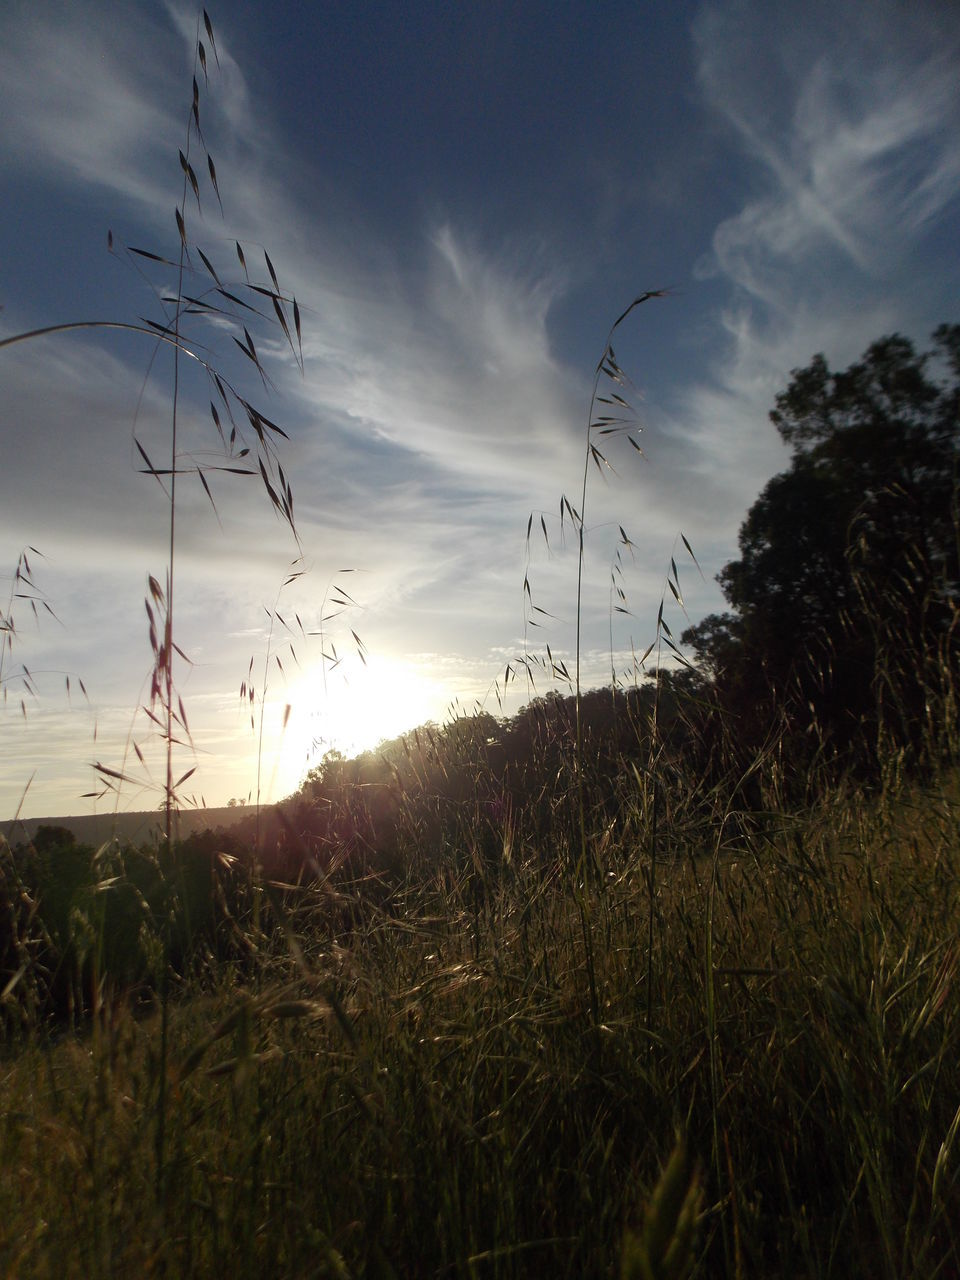 nature, grass, sunset, growth, tranquility, tranquil scene, field, beauty in nature, plant, sky, scenics, no people, landscape, outdoors, timothy grass, day